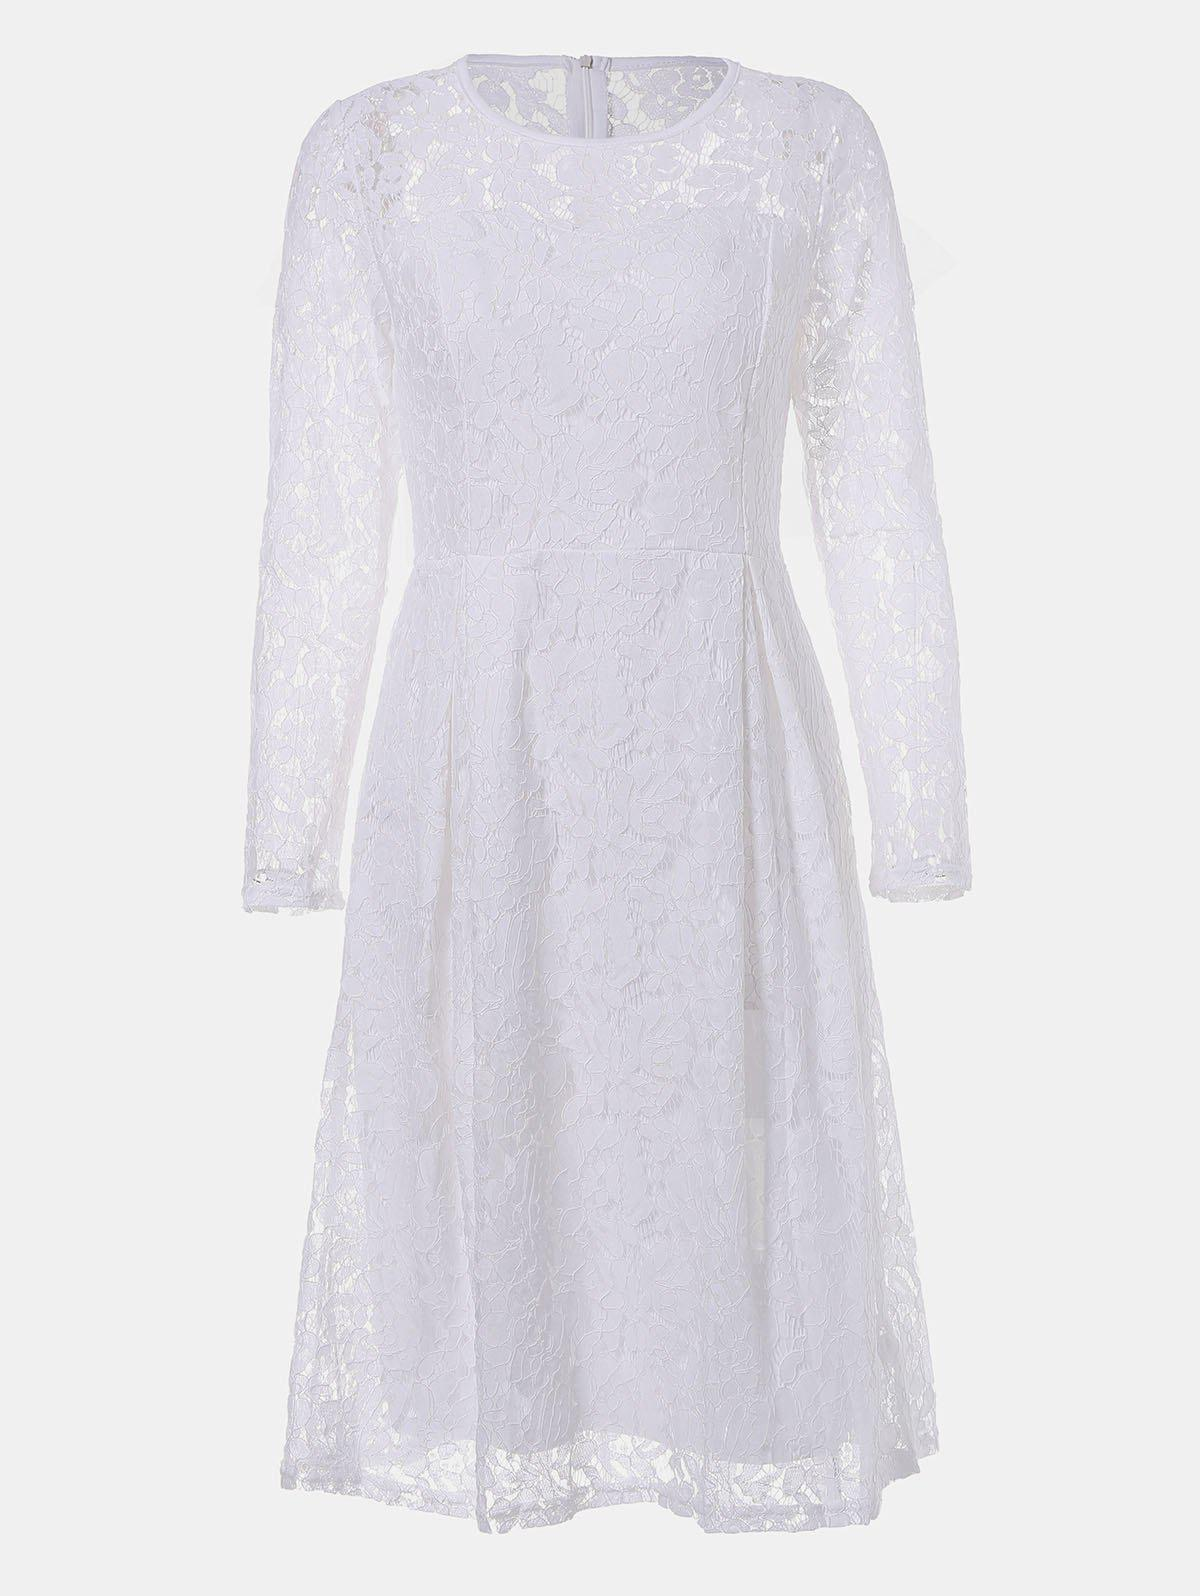 Fancy Round Neck Long Sleeve A-line Lace Dress